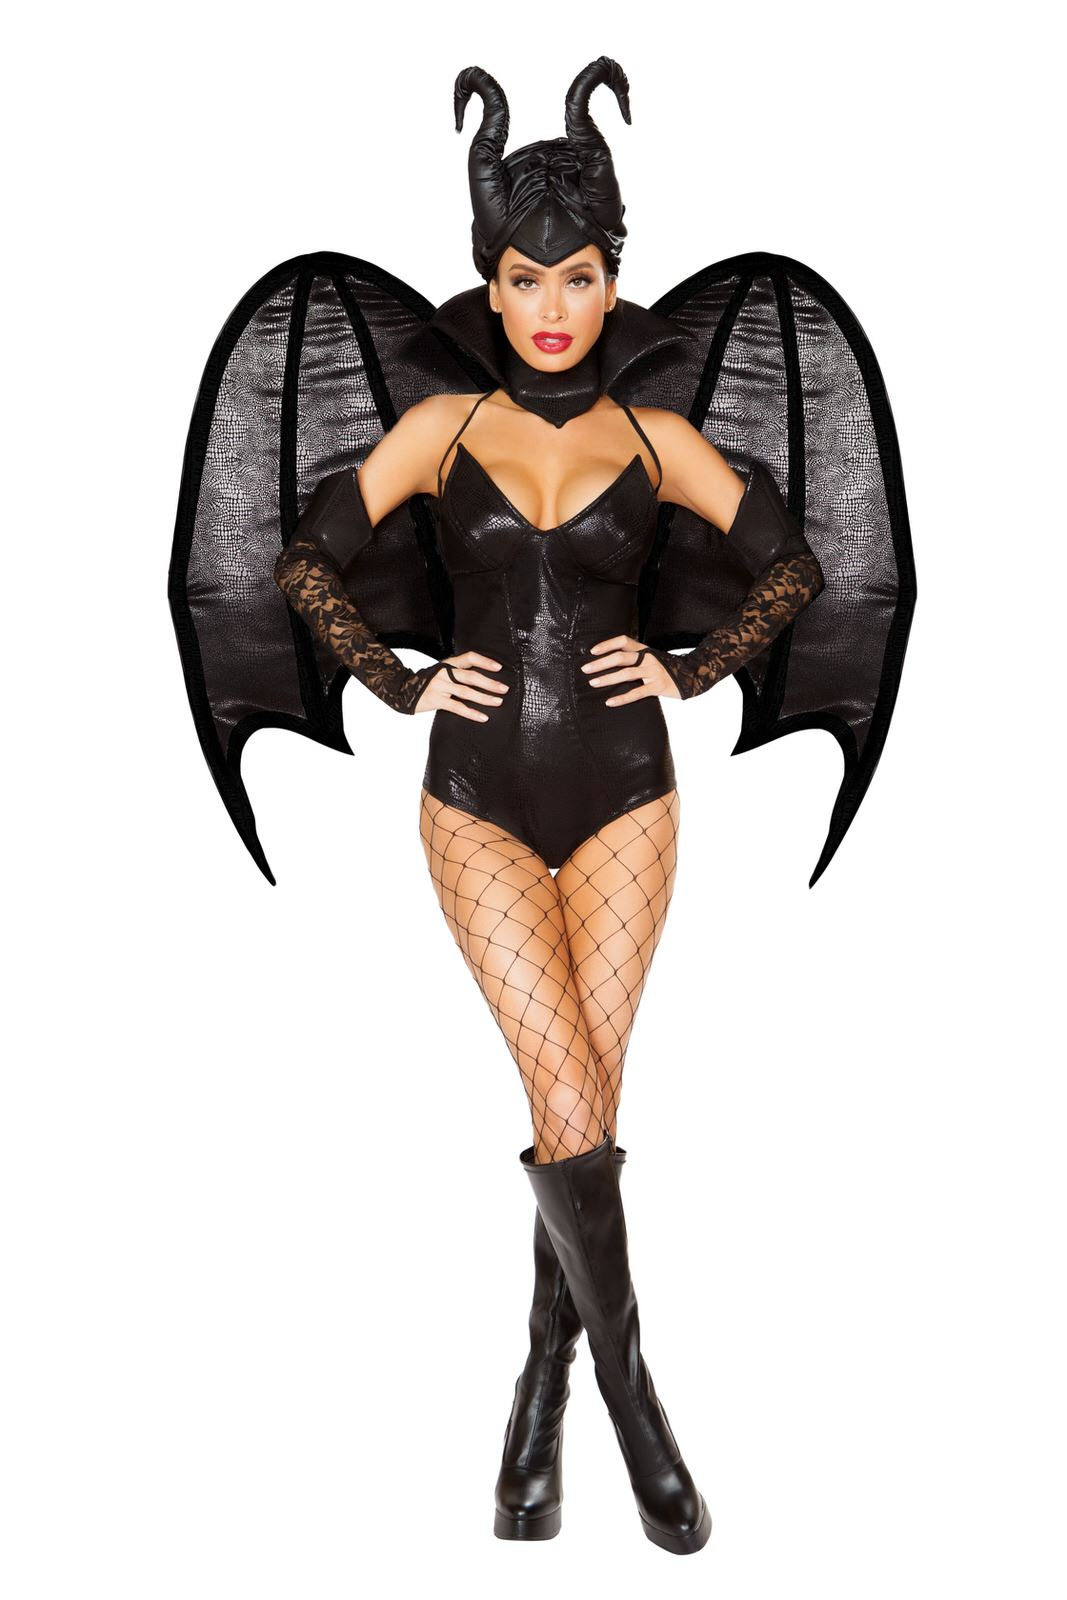 Adult Vengeful Evil Dark Fairy Woman Costume ...  sc 1 st  The Costume Land & Adult Vengeful Evil Dark Fairy Woman Costume | $78.99 | The Costume Land